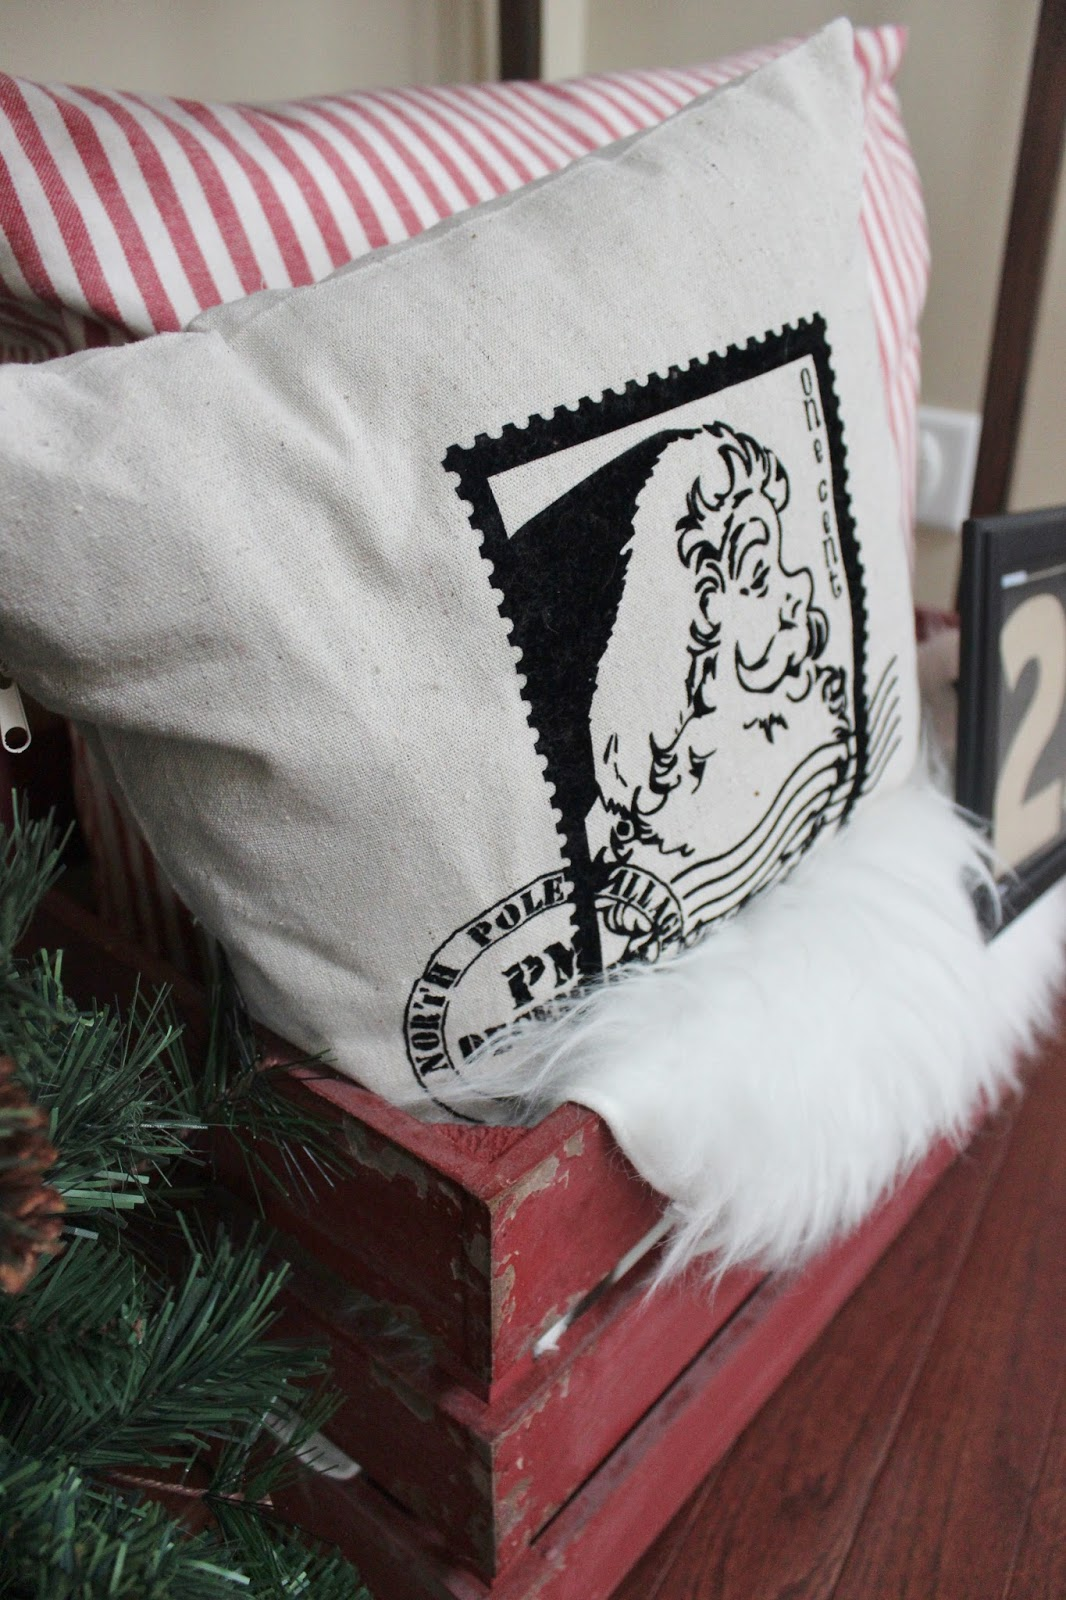 Holiday Decor: Rustic Crate Dressed Up with Santa Pillow and Faux Sheepskin Rug